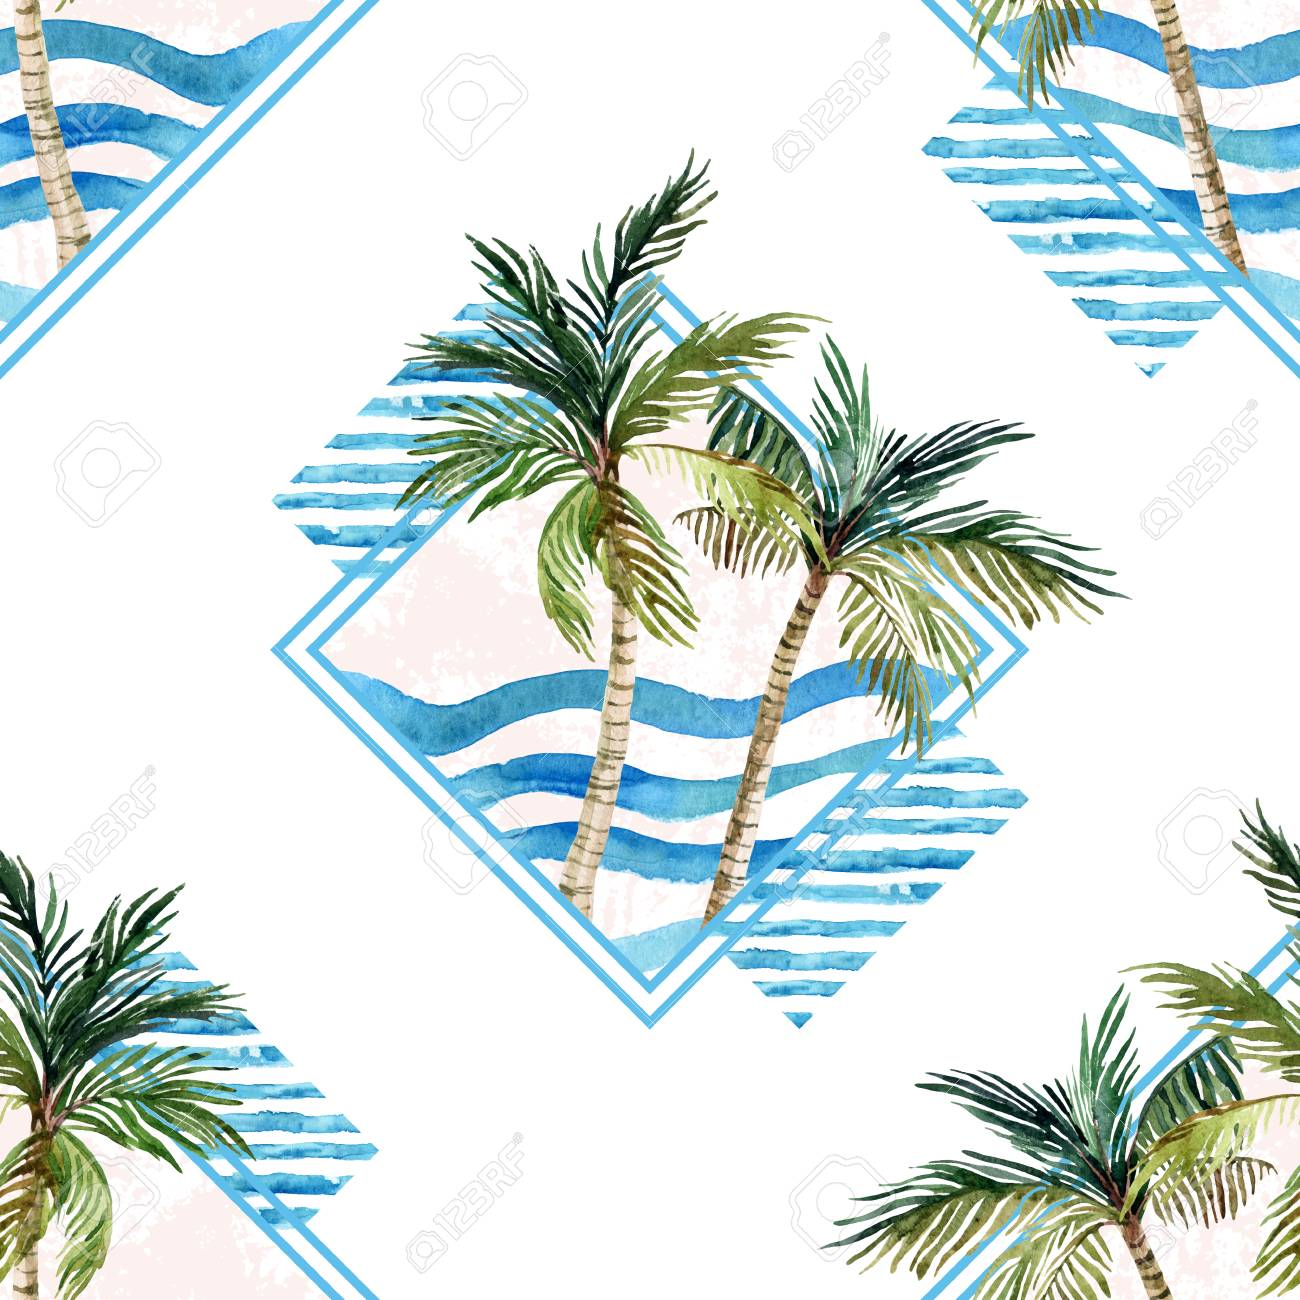 Printable Pictures Of Palm Trees